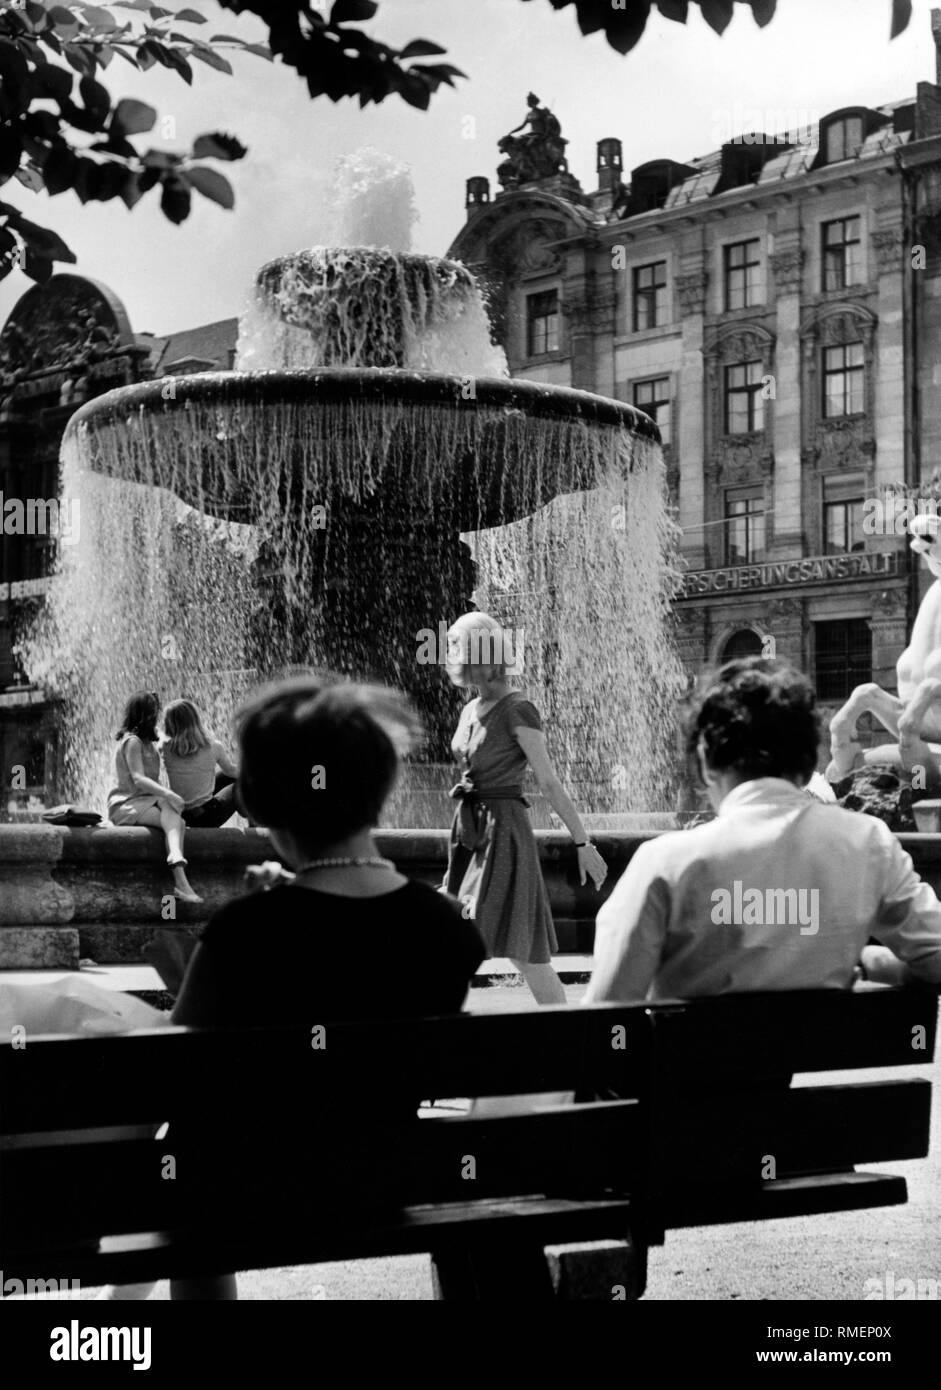 The Wittelsbacher Brunnen (fountain) at the Lenbachplatz in Munich. In front a woman and people on a bench (undated picture). - Stock Image